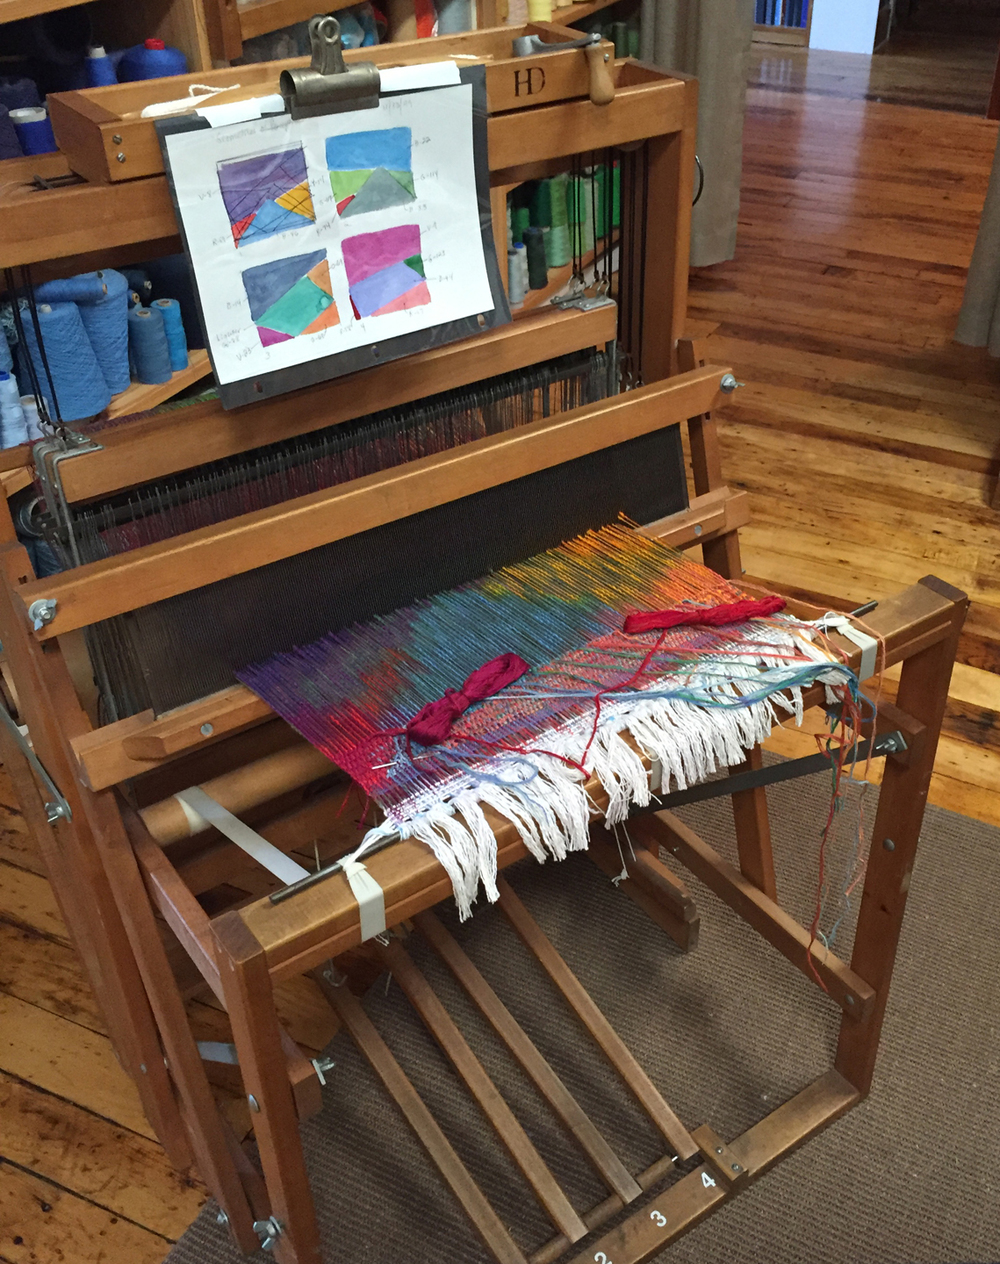 Betty's small loom with a warp-painted, hand-woven tapestry in progress.